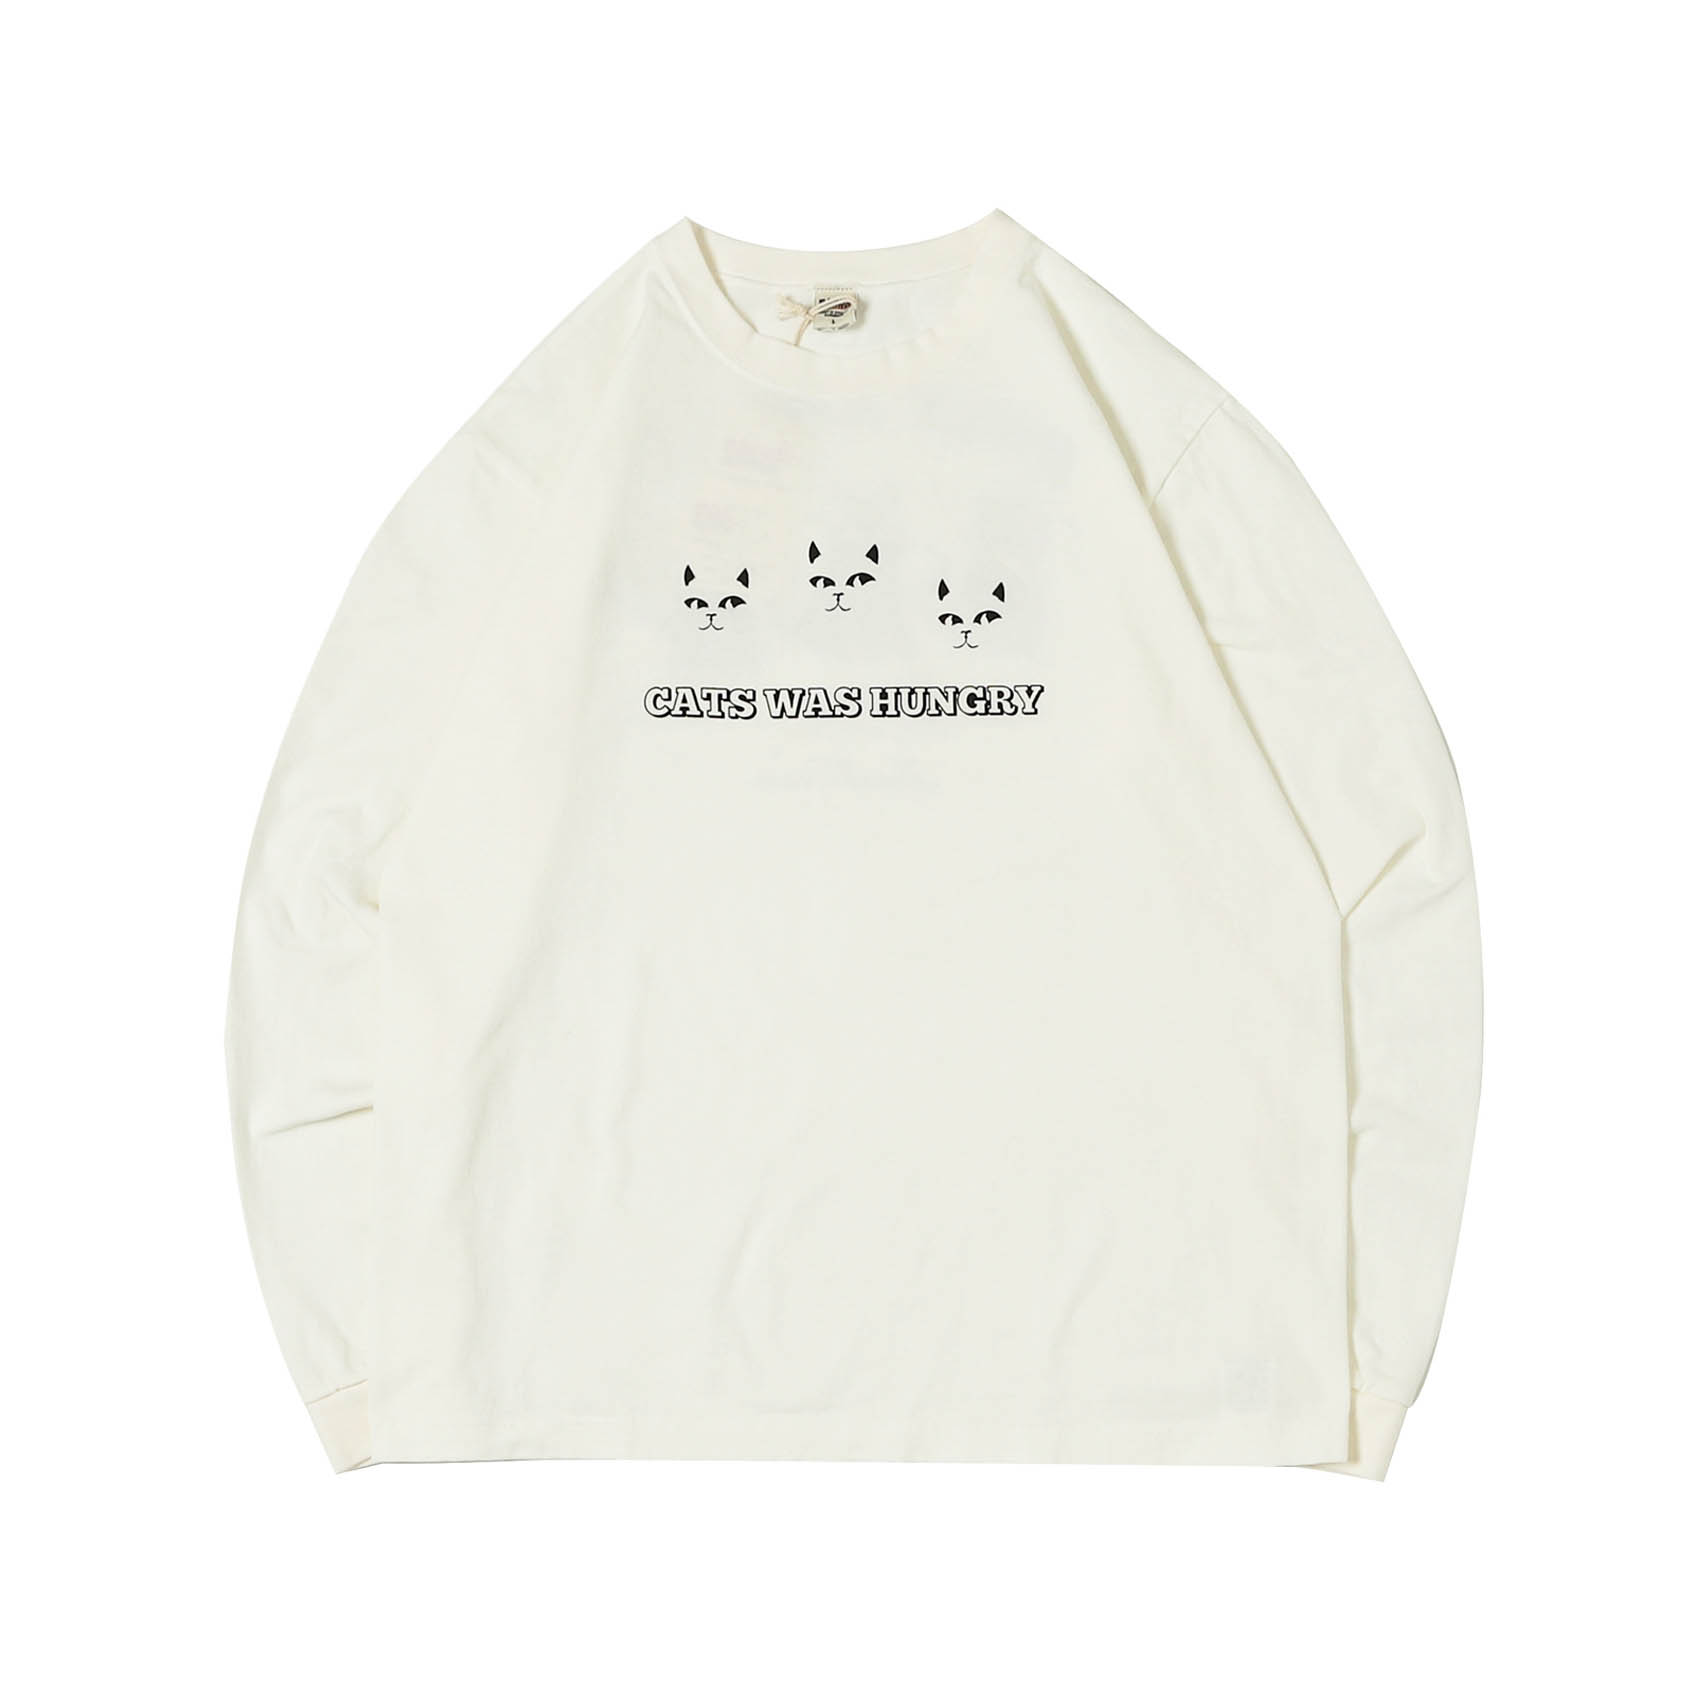 L/S PRINTED TEE - CATS WAS HUNGRY WHITE